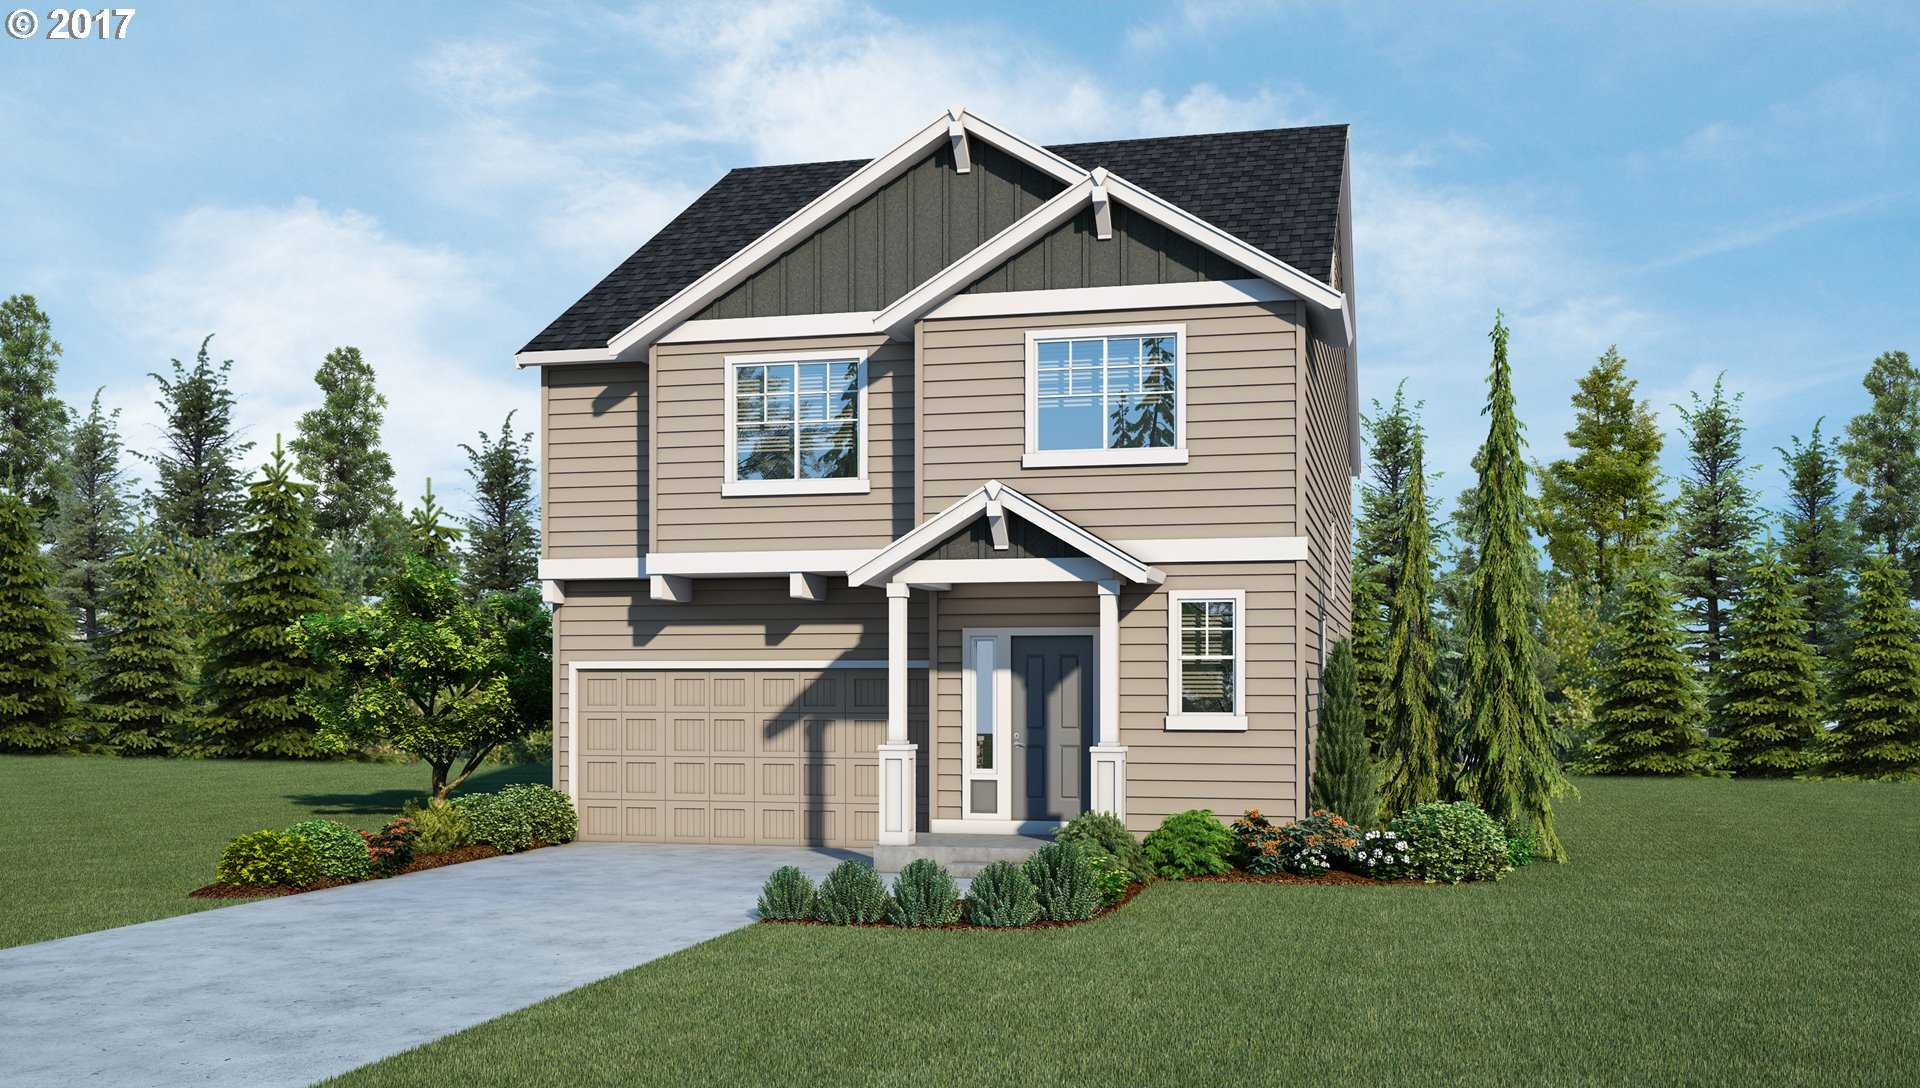 $459,995 - 4Br/3Ba -  for Sale in Pineview Meadows, Happy Valley